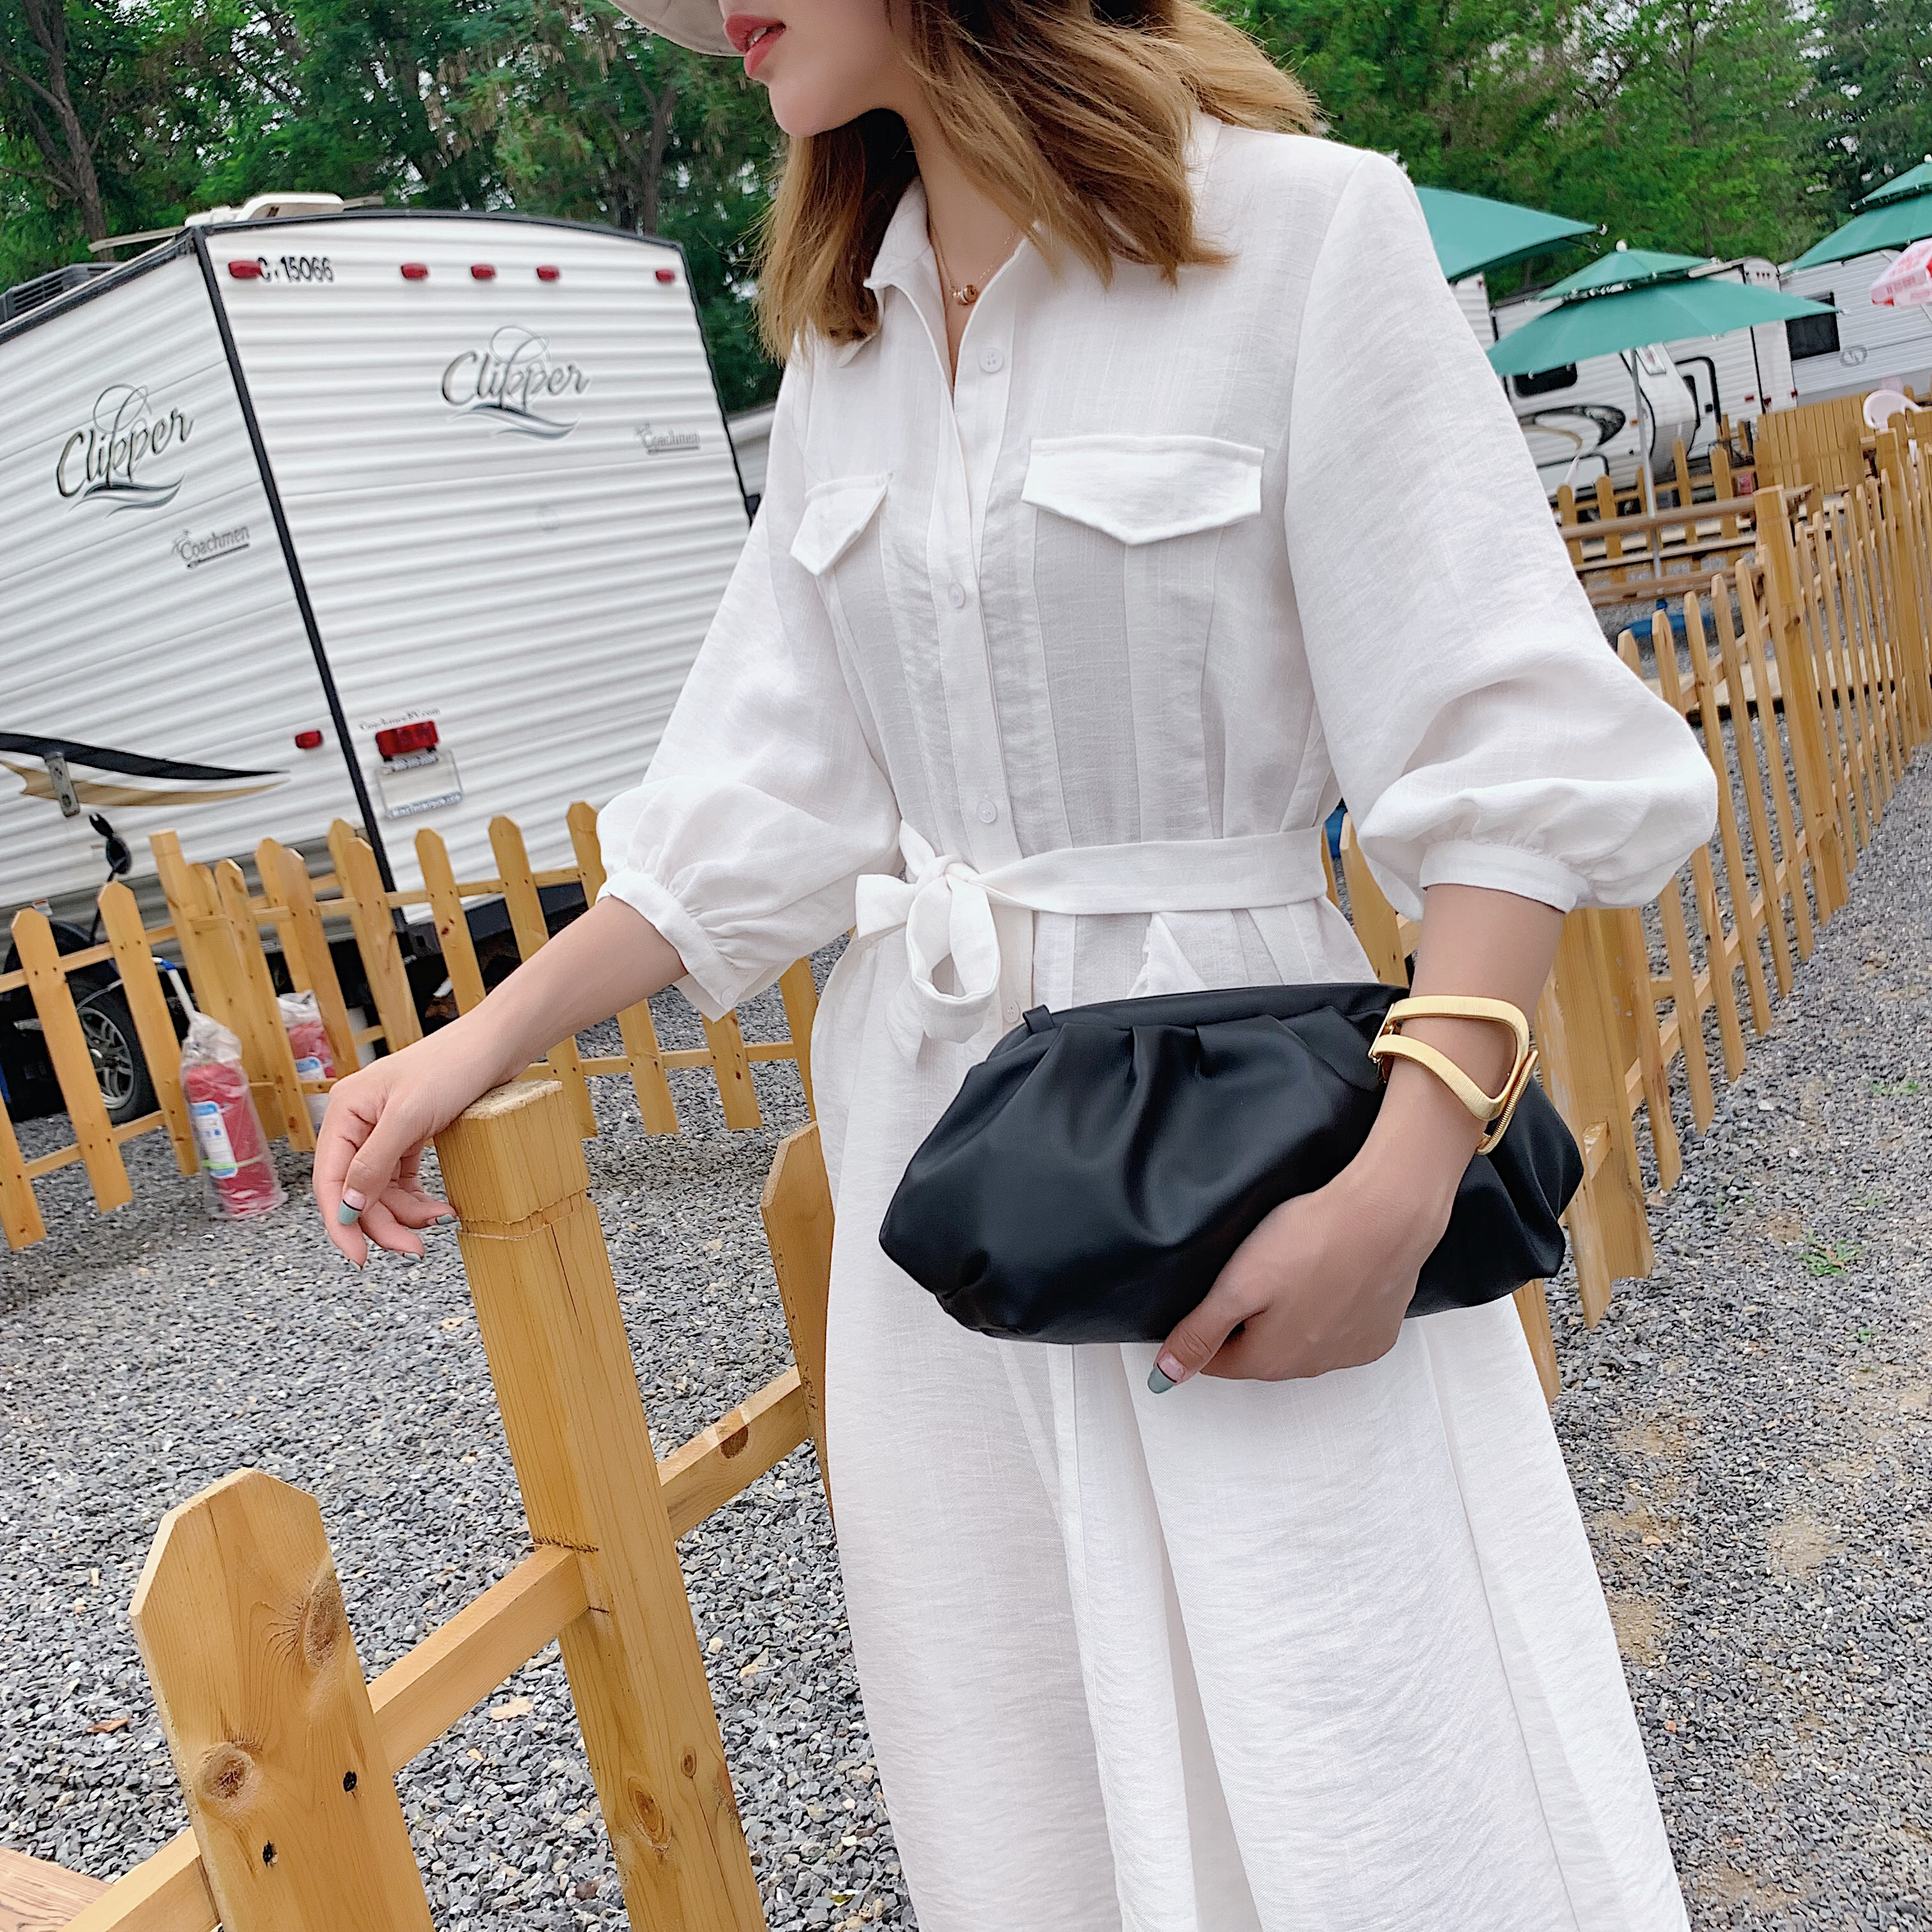 Solid Color Elegant Crossbody Bags For Women 2019 Small Clutch Female Party Handbags and Purses Lady Shoulder Messenger Bag